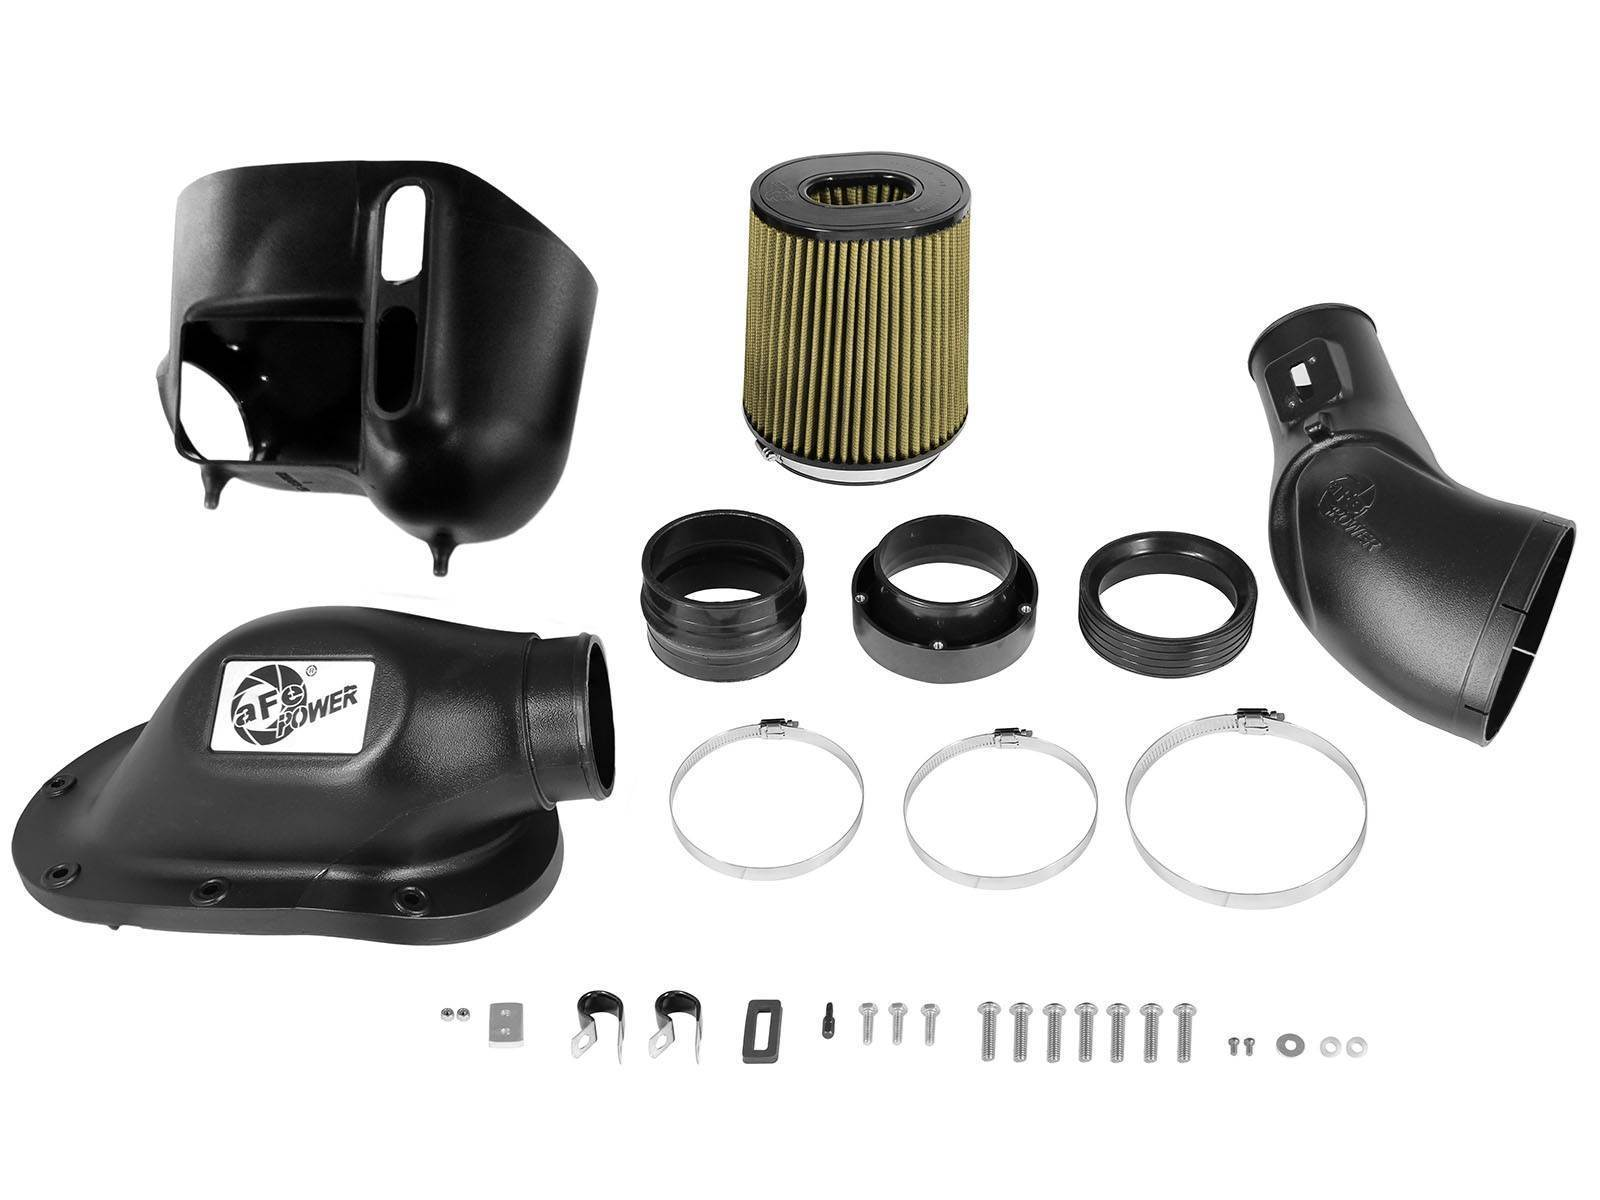 75-81872-1 - aFE Pro Guard 7 Type Si Performance Cold Air Intake System for 2011-2016 Ford Powerstroke 6.7L diesels